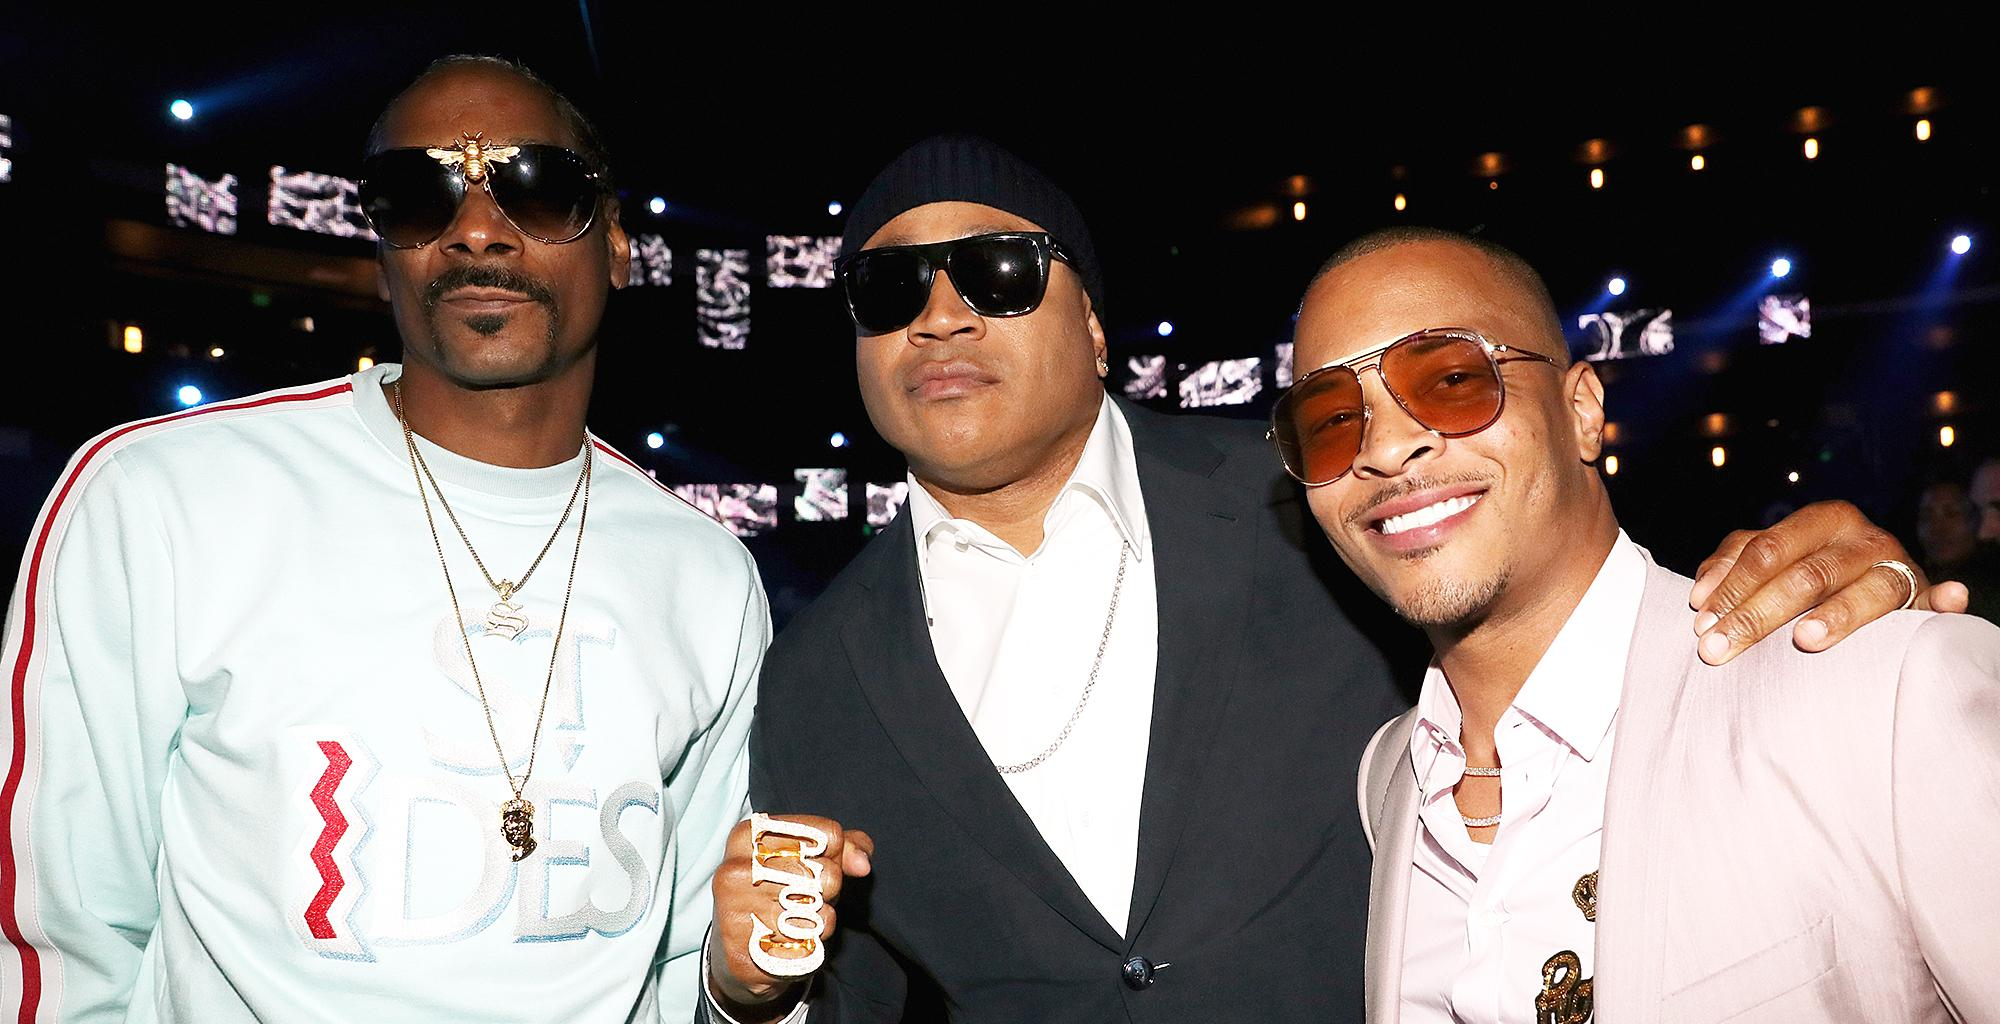 T.I. Praises His Son, Domani Harris And Snoop Dogg Is Right Here For It - Watch The Video